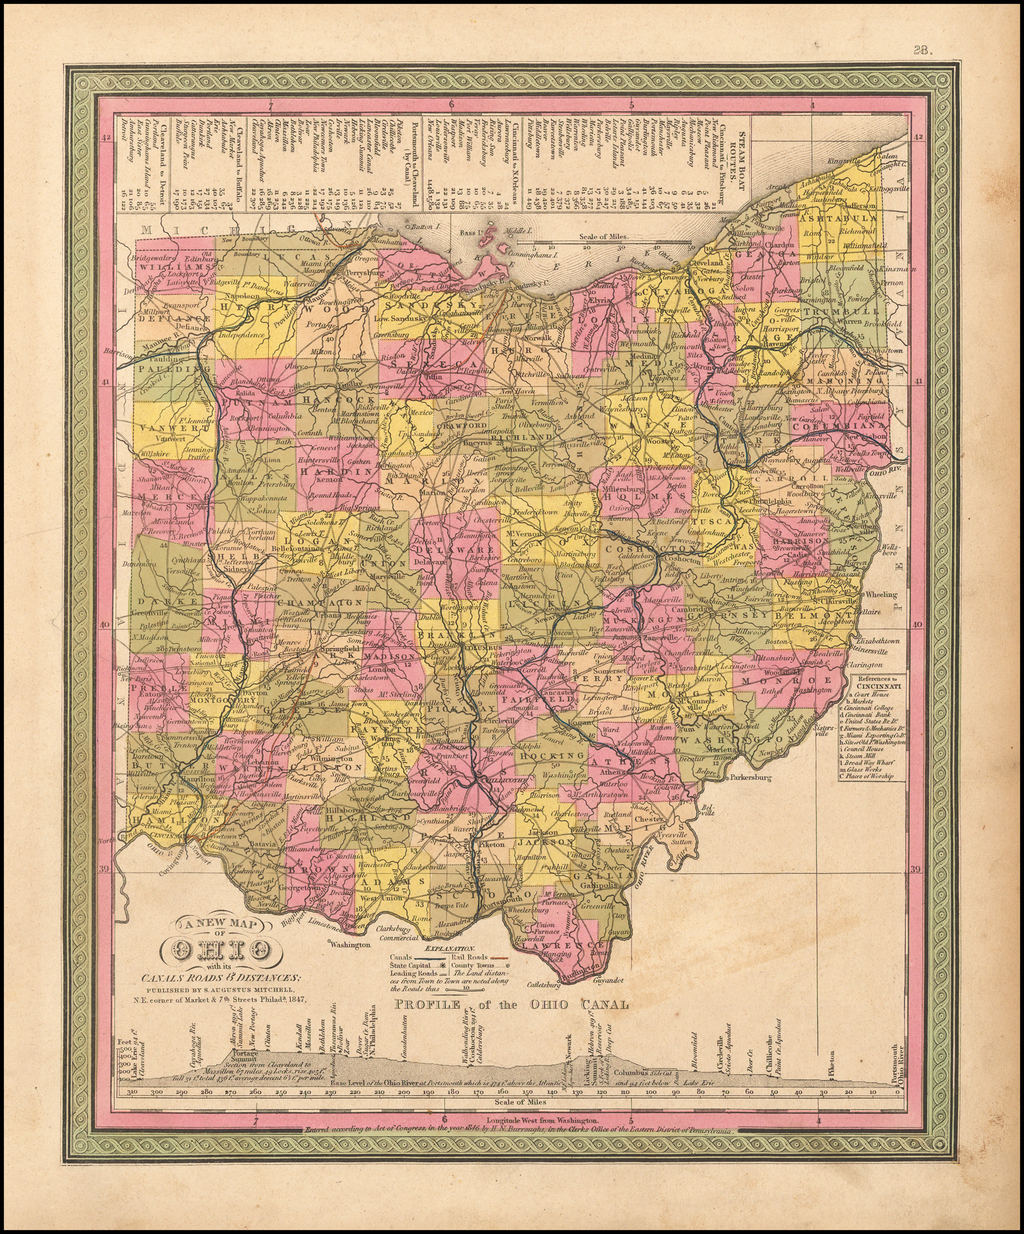 A New Map of Ohio with its Canals, Roads & Distances By Samuel Augustus Mitchell